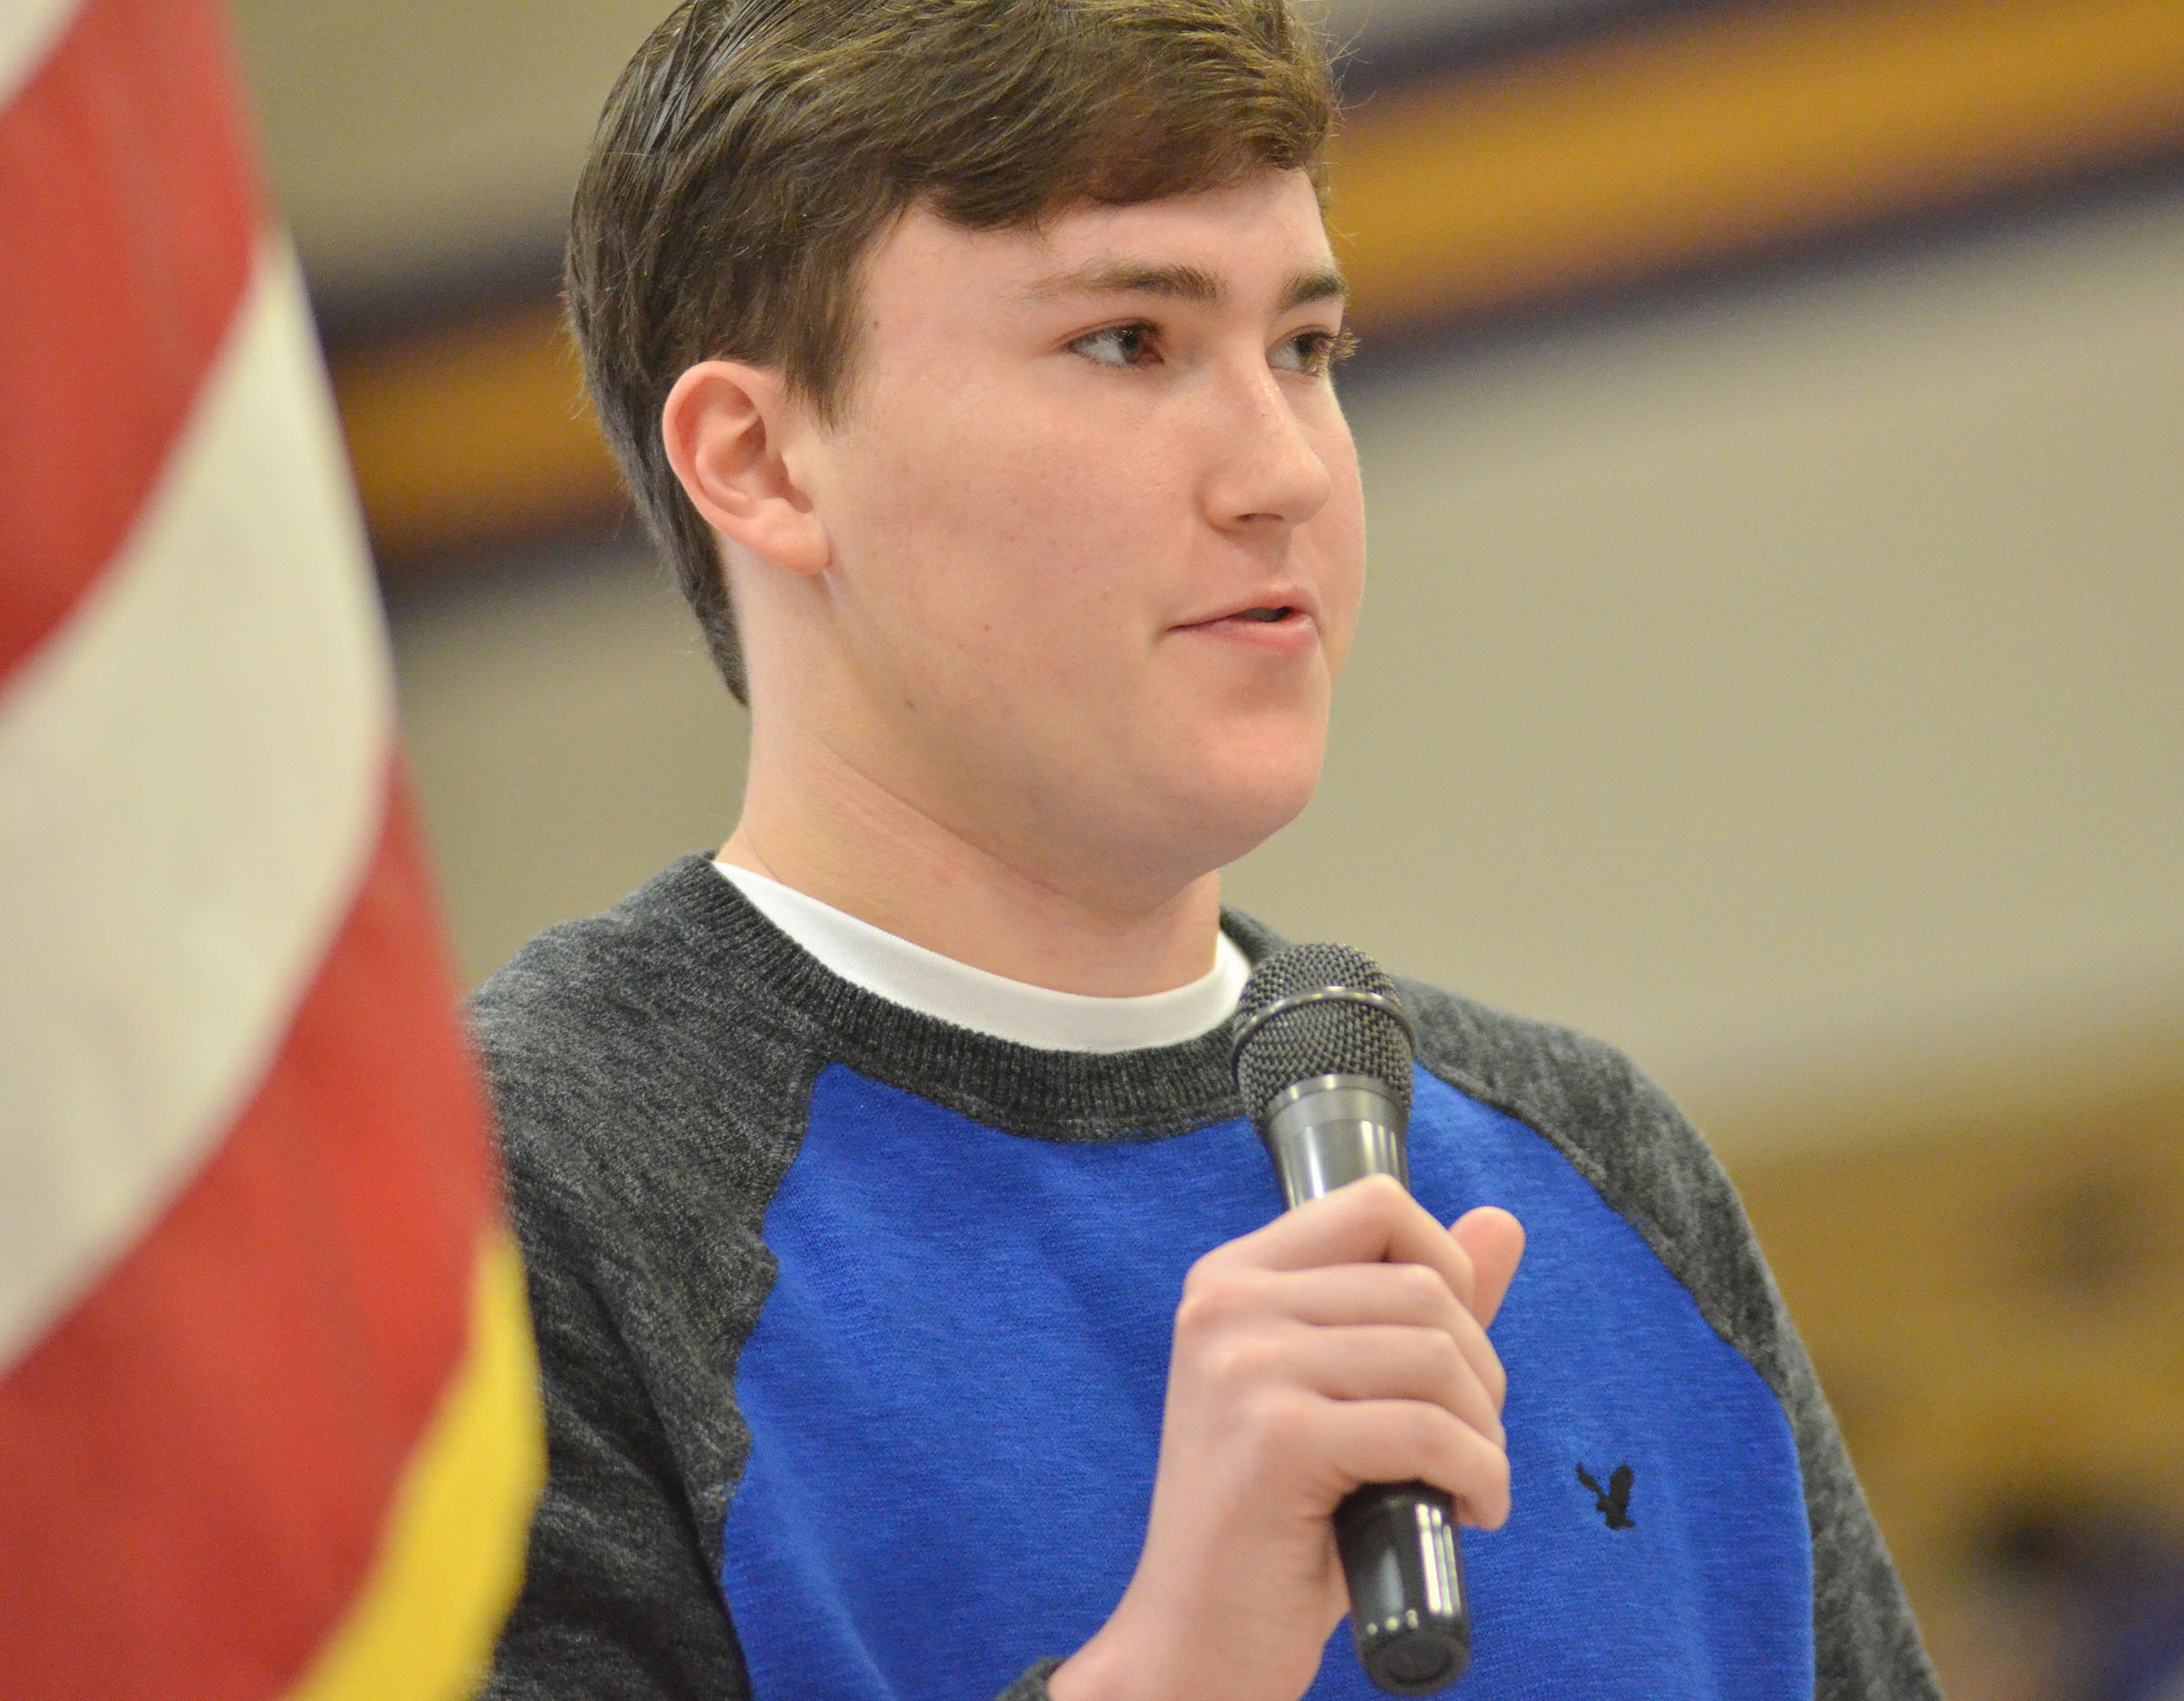 CHS senior Zack Settle discusses what Veterans Day means to him.